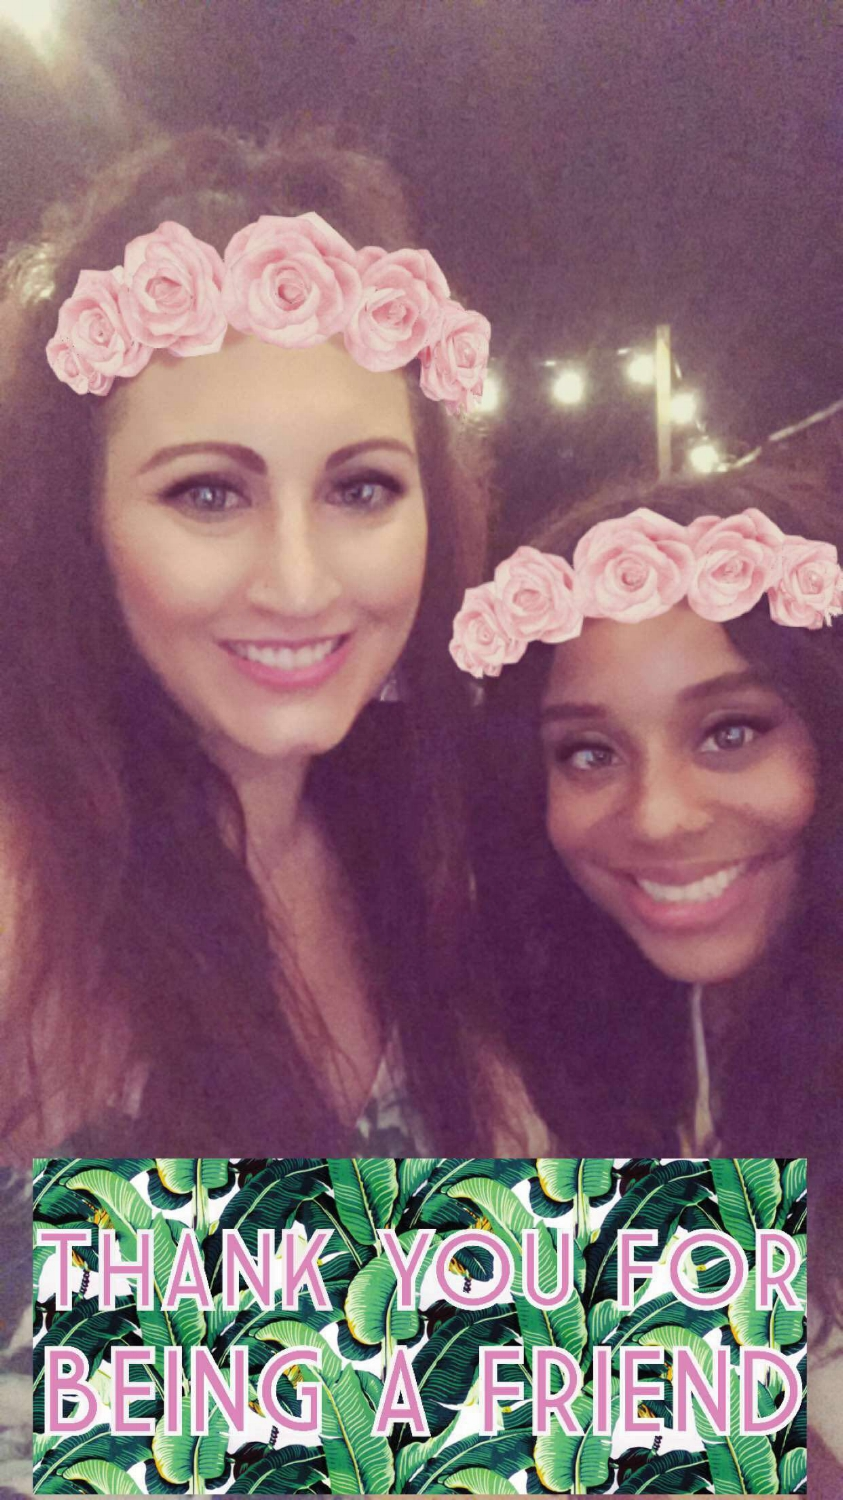 This rose crown filter showed up around midnight during the party! It had never been an option for my Snapchat until then so in my head it was released special, just for me, at my birthday party. I'll call it the Nylund filter from here on out!